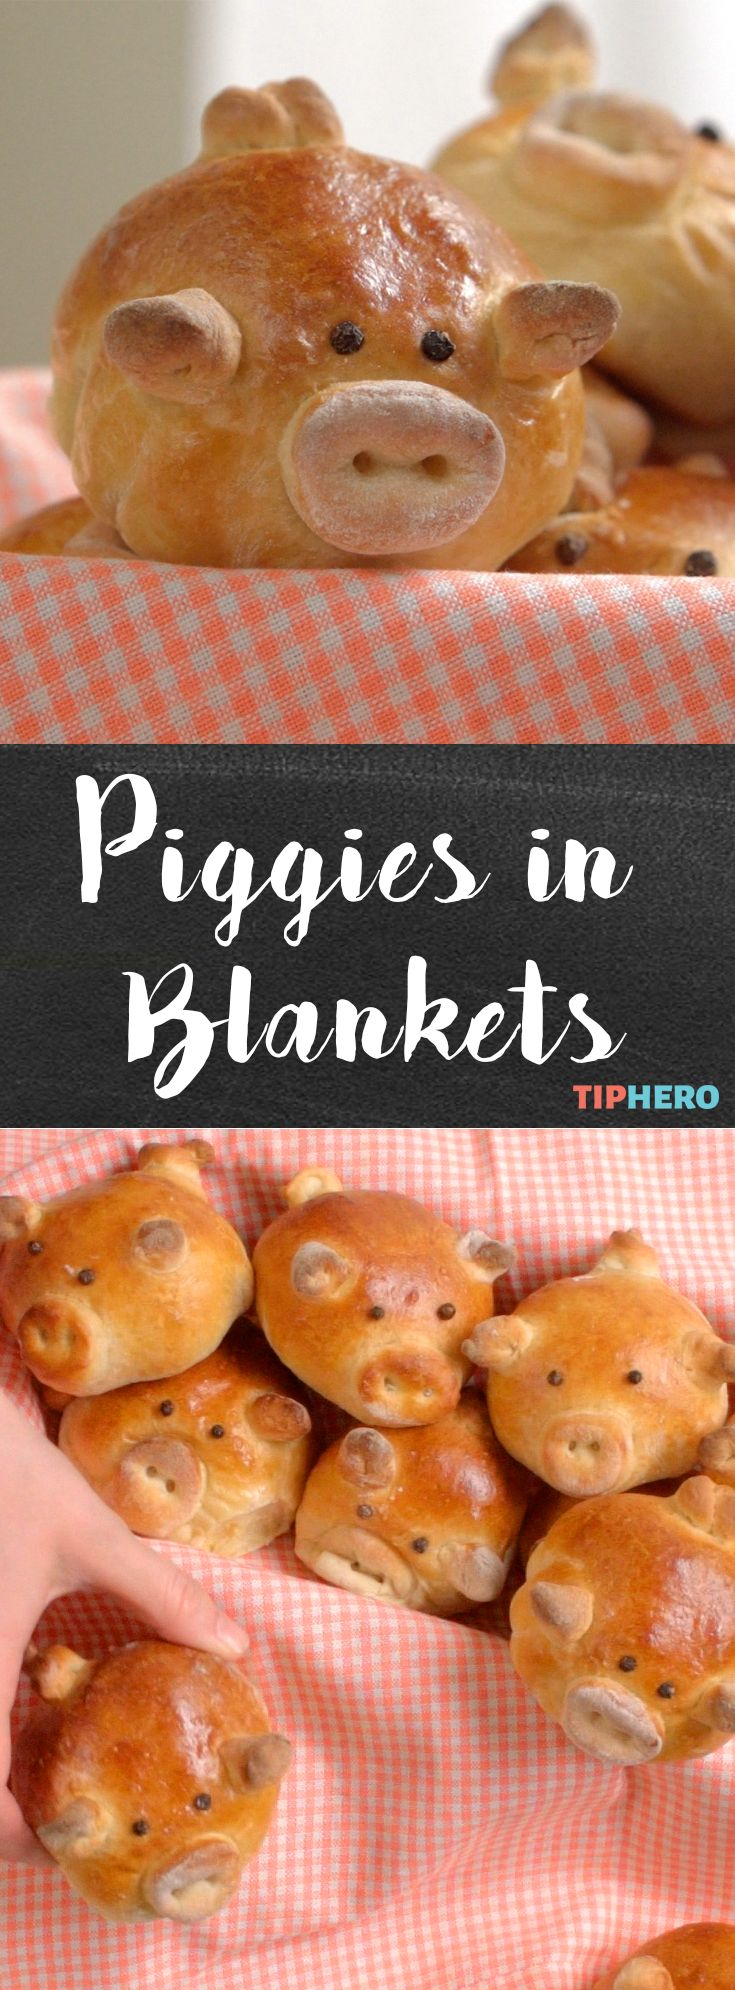 Piggies in Blankets | This adorable recipe takes the classic pigs in a blanket appetizer to a whole new level Delight your guest with these little piggies. All you need are some dinner rolls, sausages of your choice, peppercorns, and egg wash. Click for the video and recipe. #cookingwithkids #crowdpleasers #easterrecipes